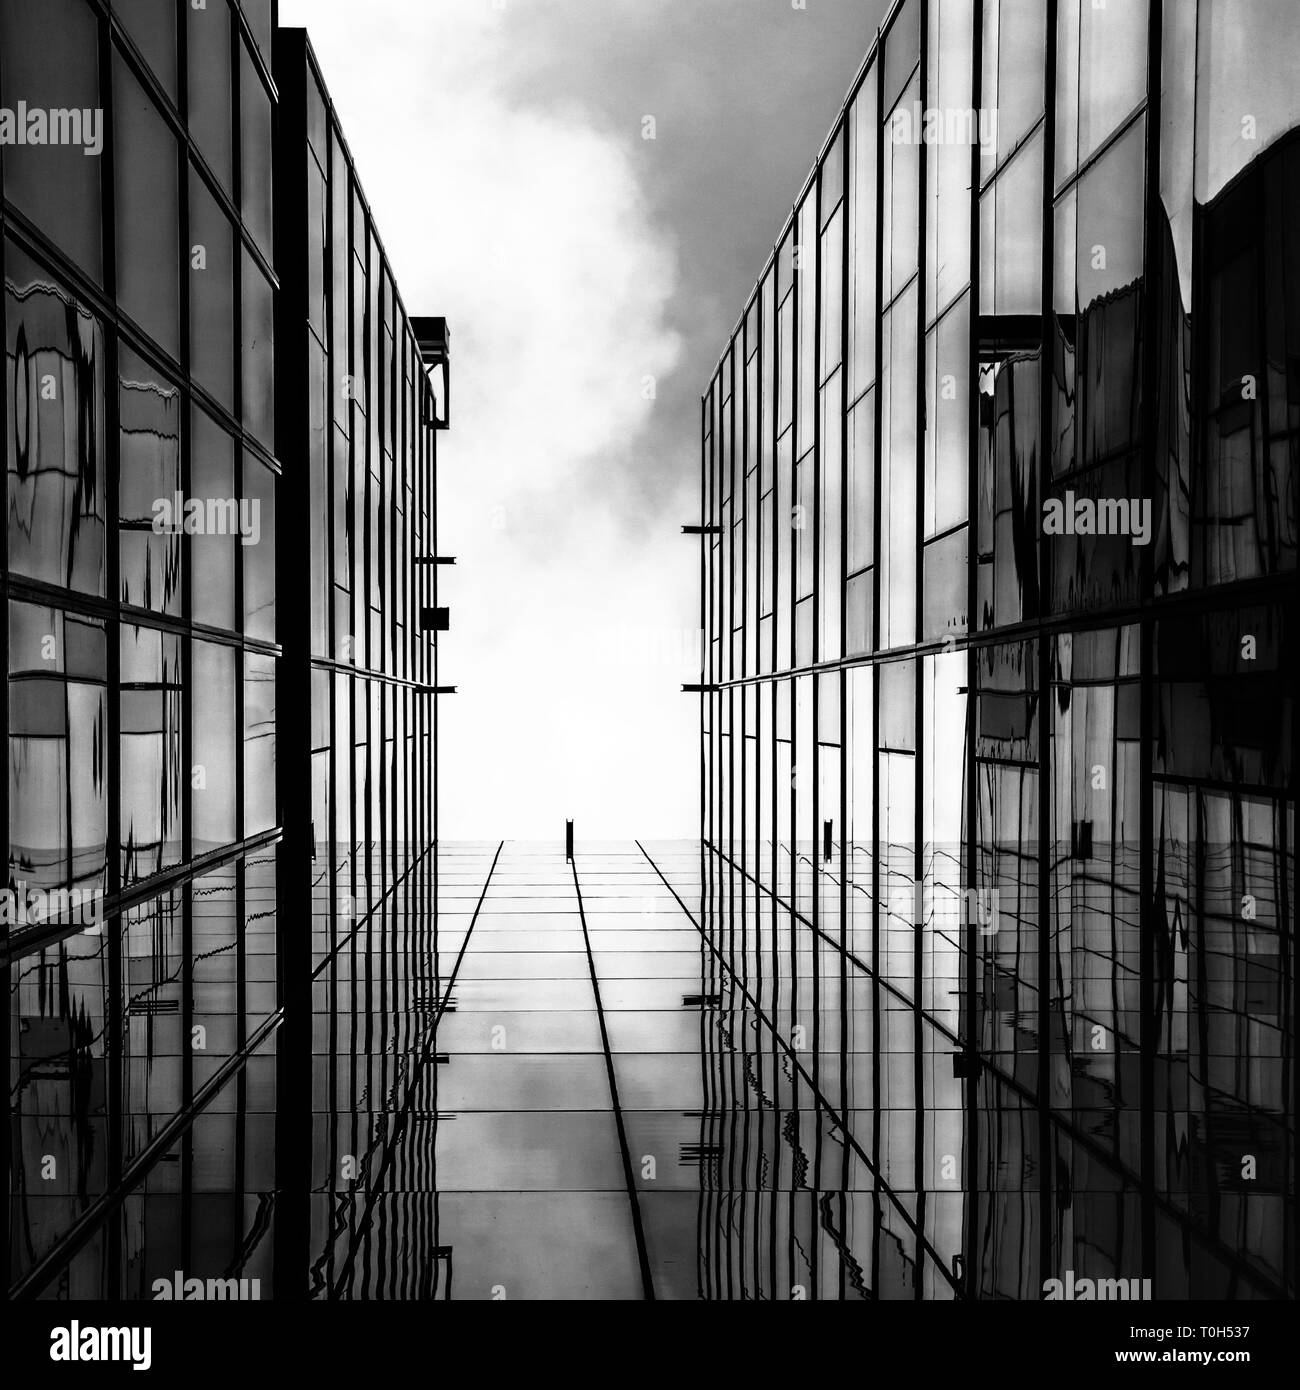 Building facade with an amazing perspective black and white photo